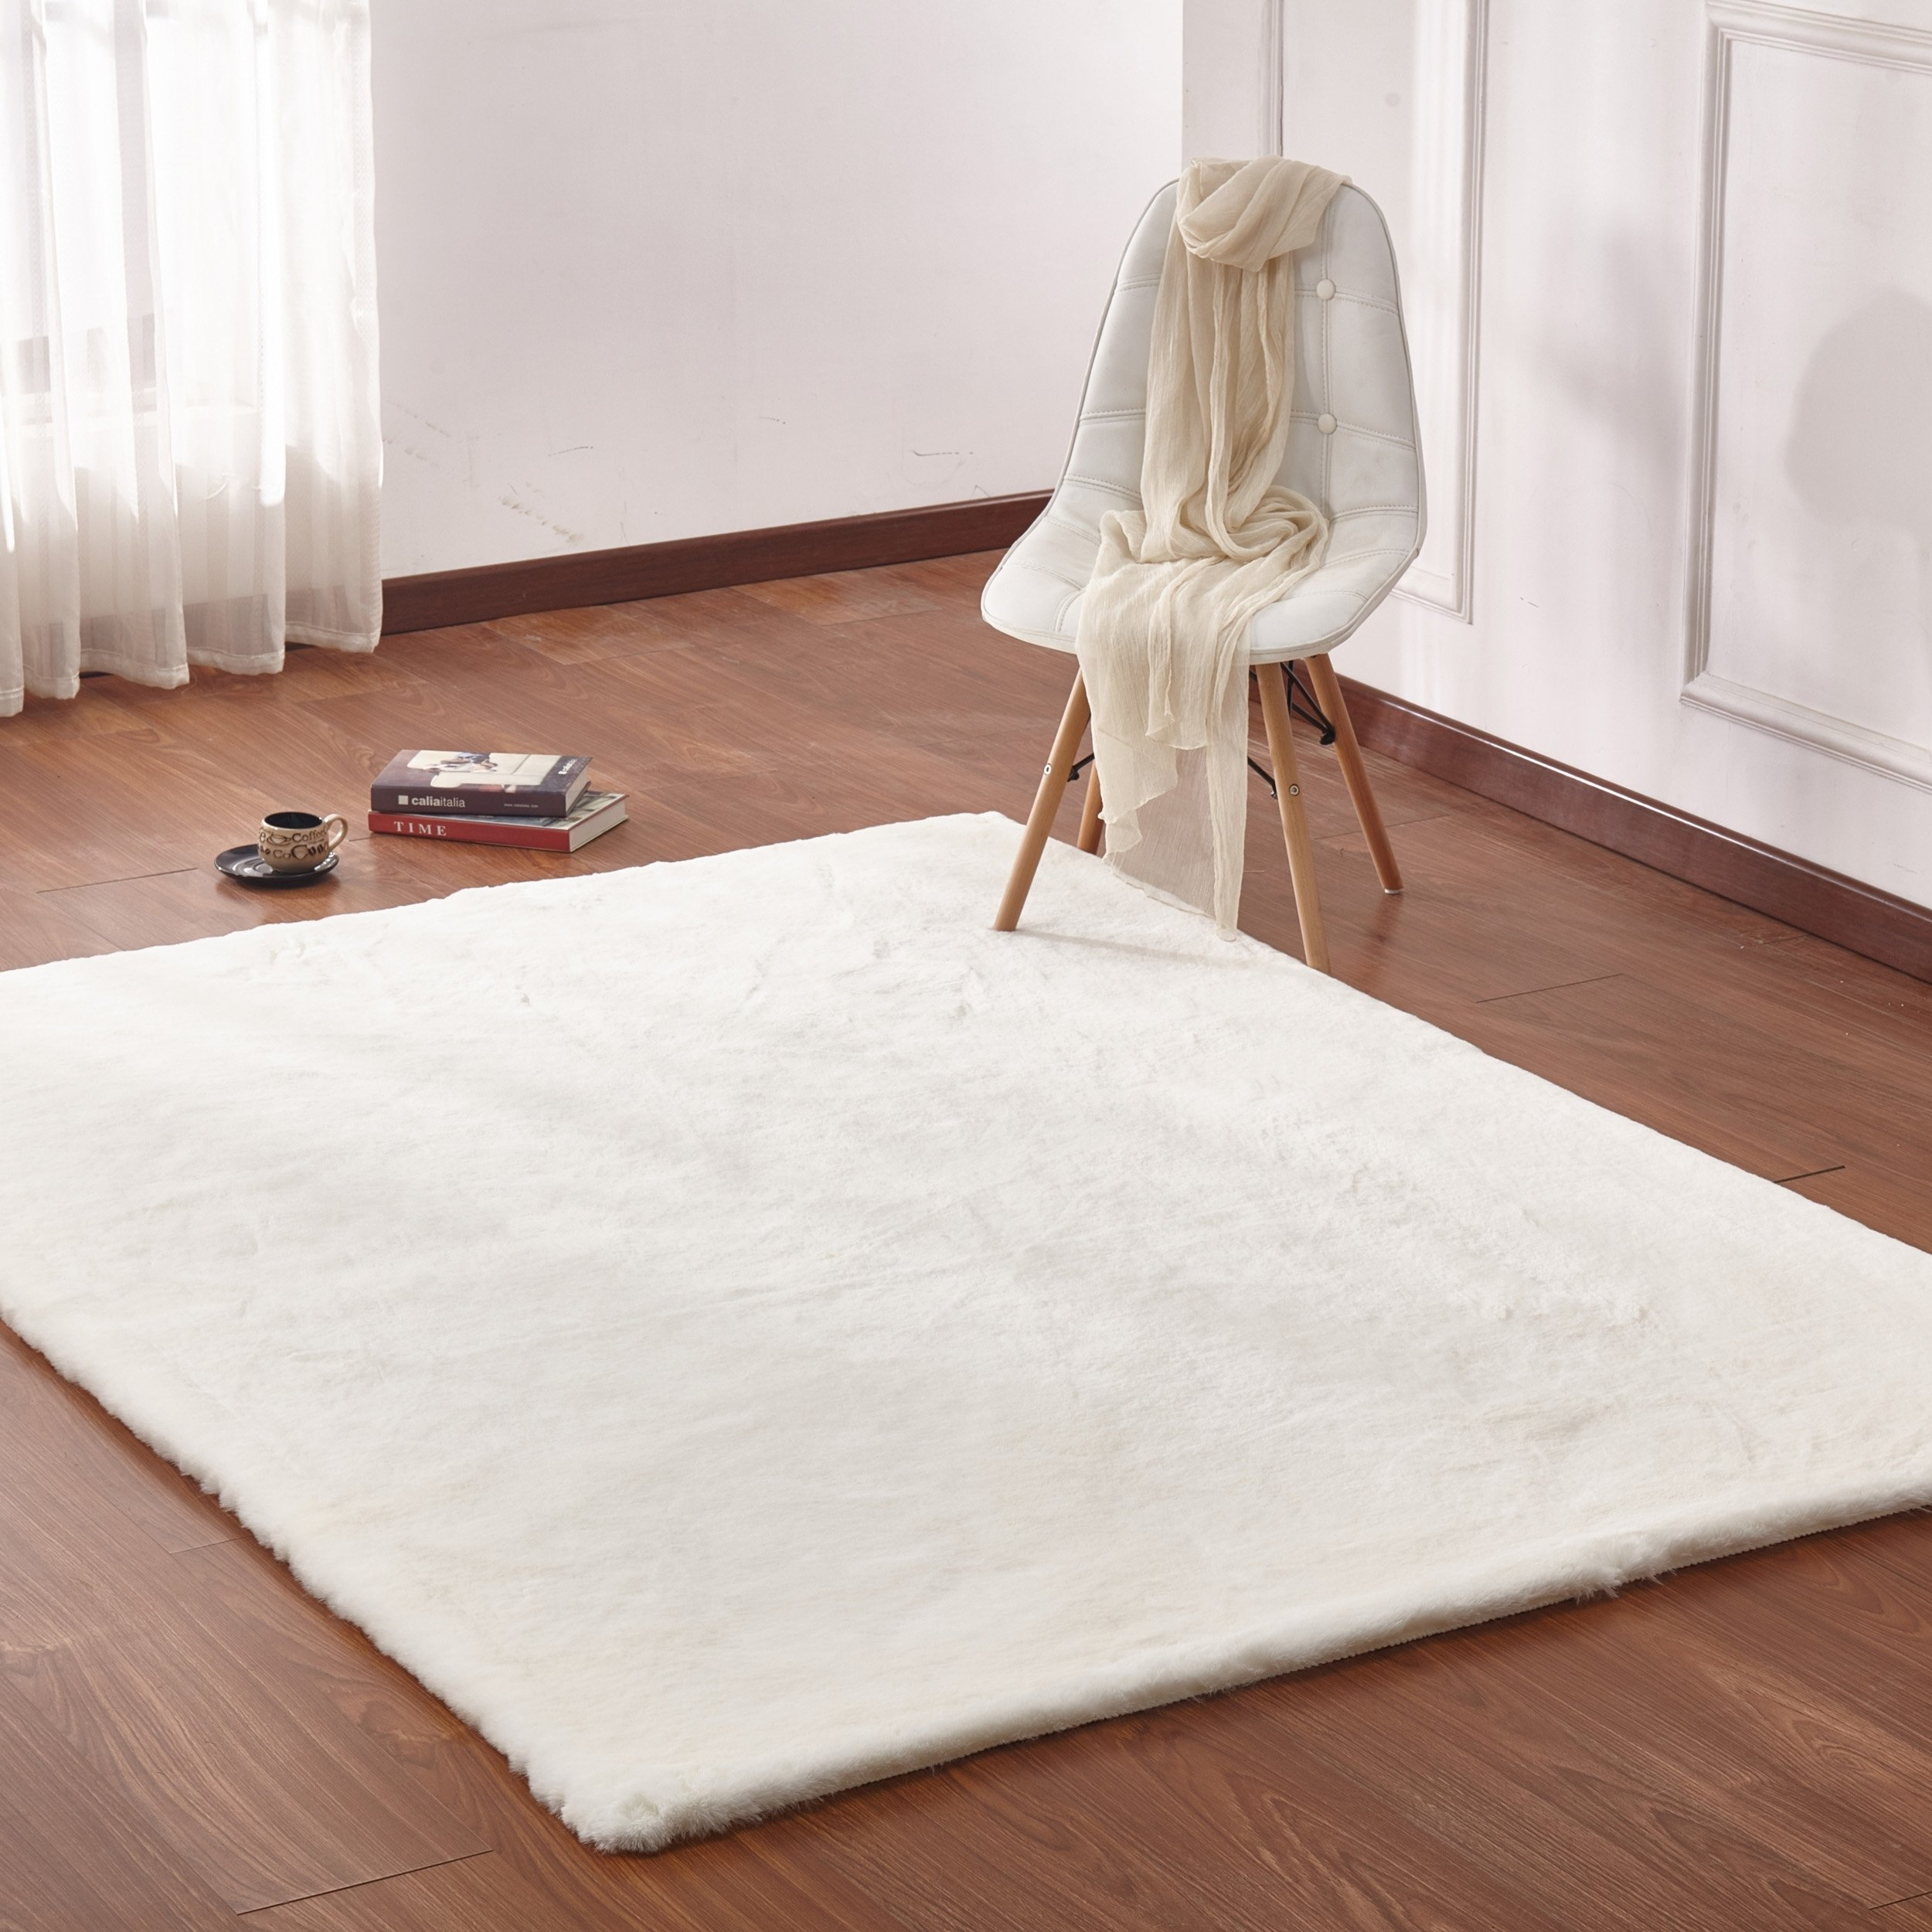 Off White Faux Fur 8x11 Rug 7 6 X 10 3 Color Off White 7 6